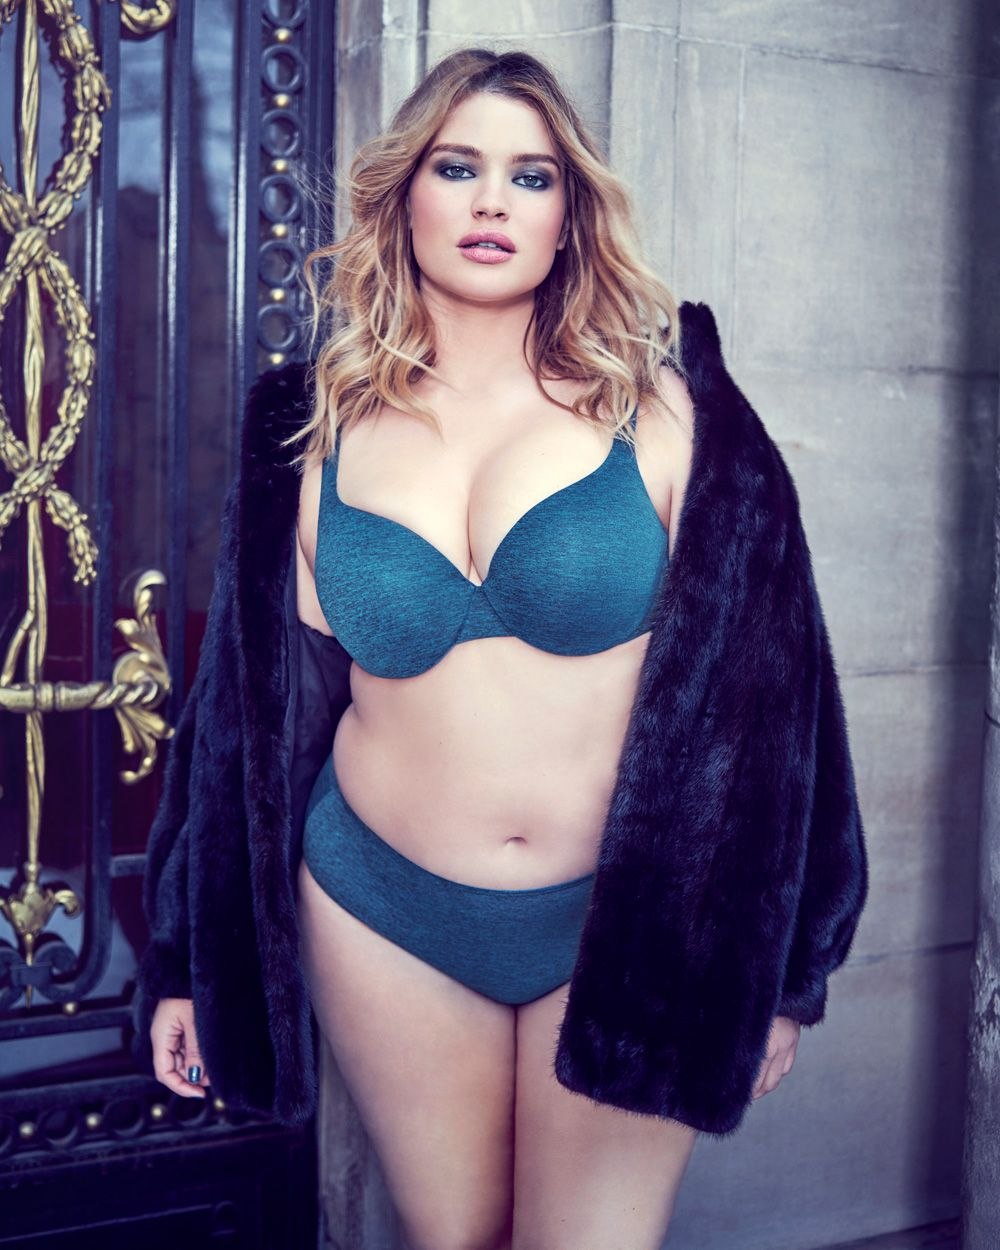 b6af9d0ad29 Déesse Flawless T-Ser Bra with Matching Panty - Additionelle CA Plus Size  Bra